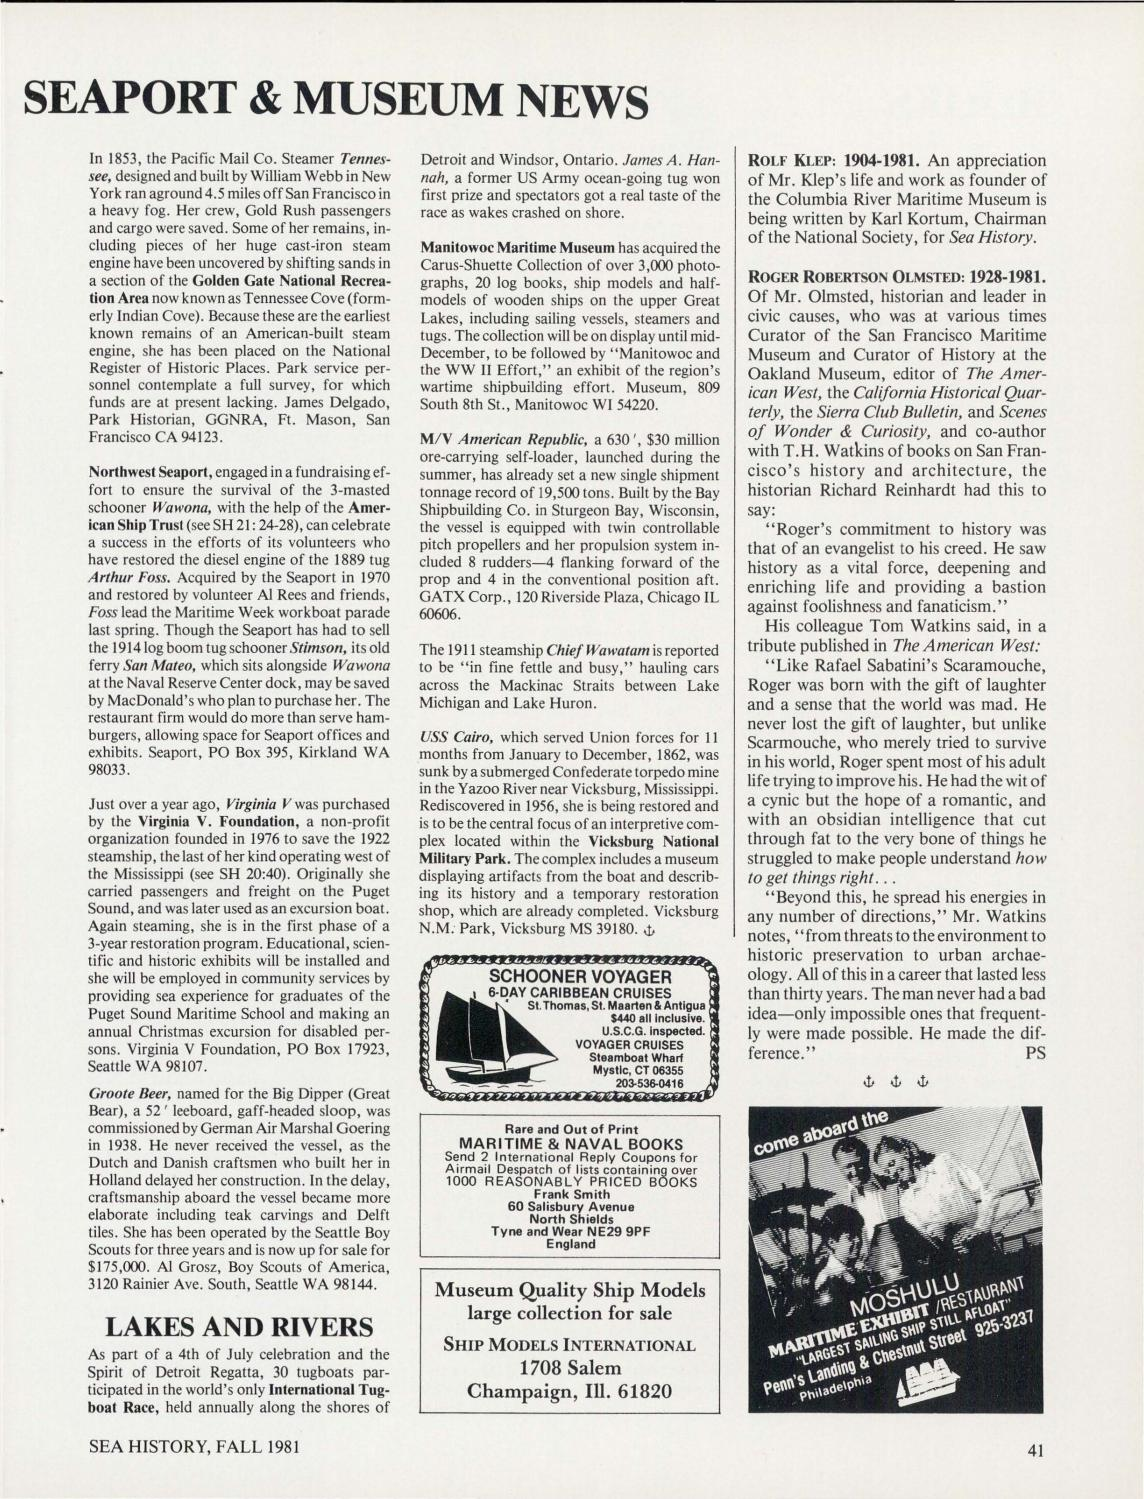 Sea History 022 - Autumn 1981 by National Maritime